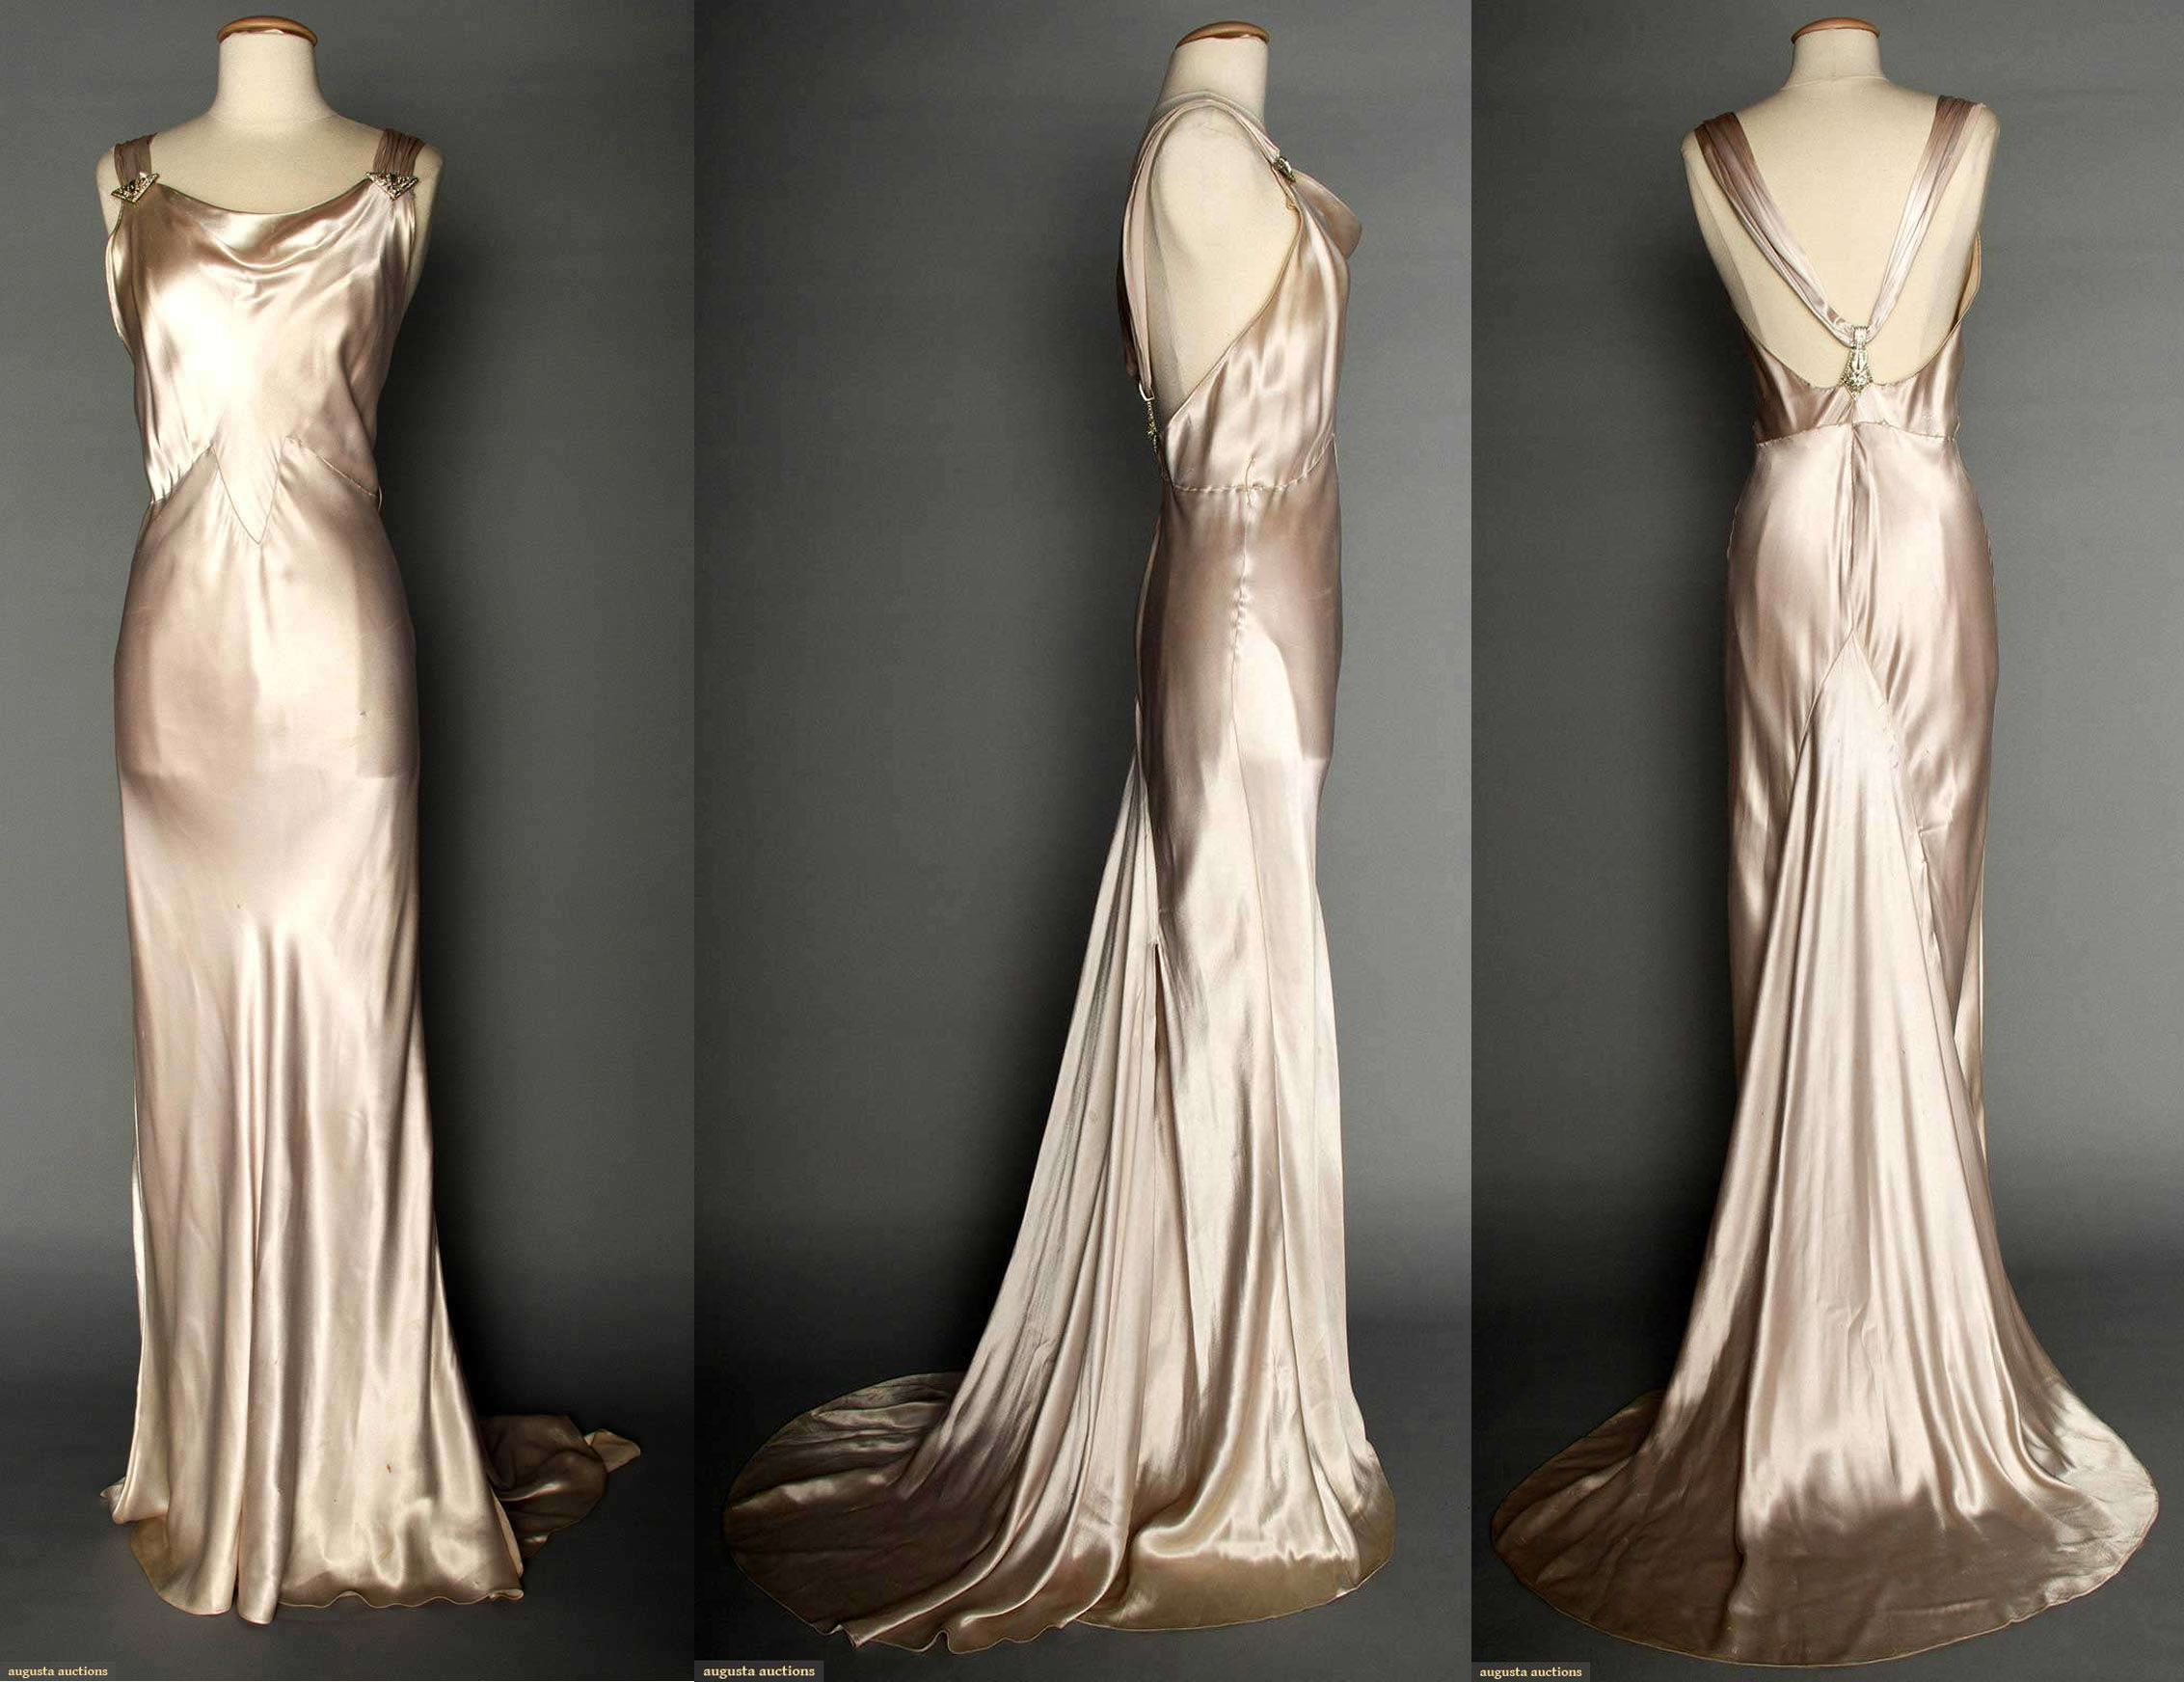 Dress code evening gown - Silver Satin Evening Gown 1930s Silver Pale Lavender Silk Charmeuse Bias Cut Sleeveless